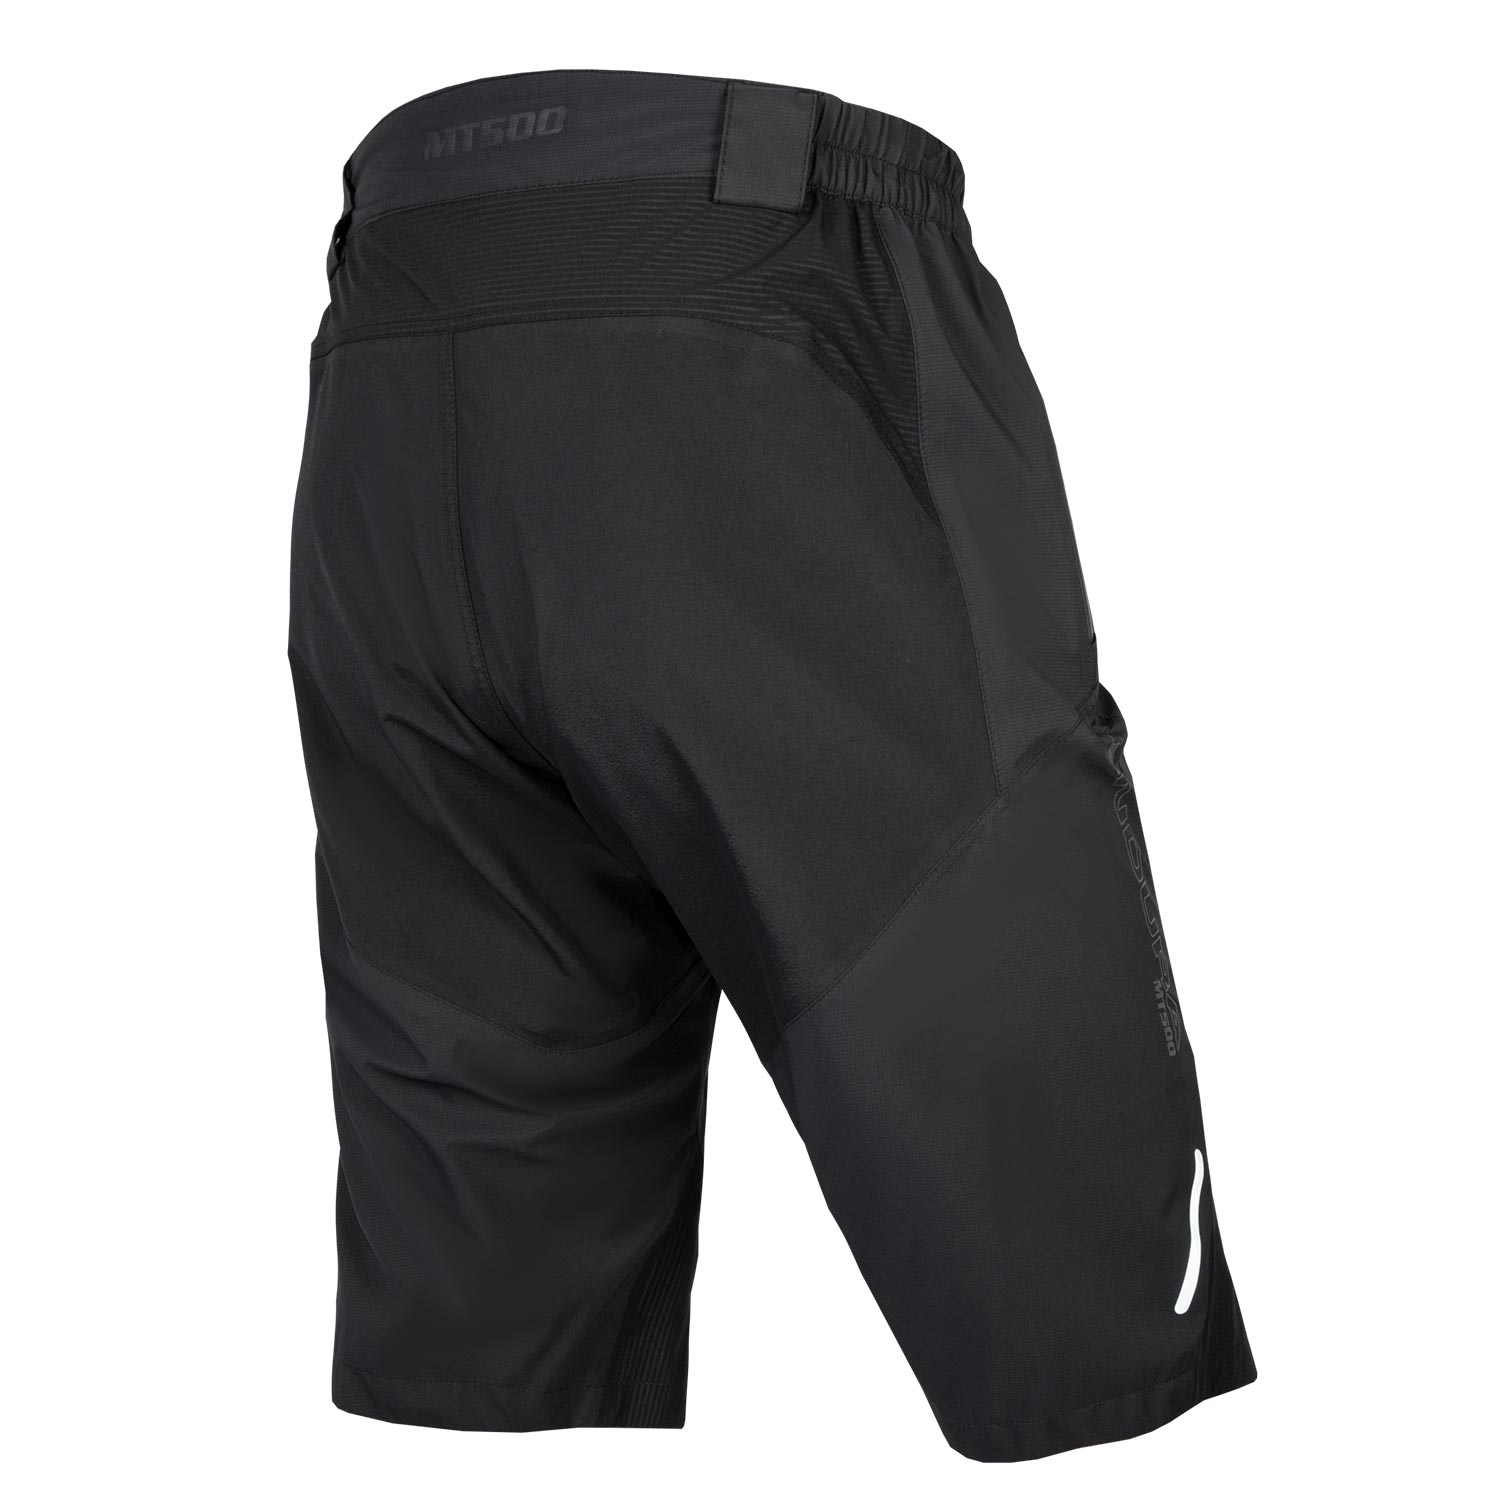 MT500 Waterproof Short Black